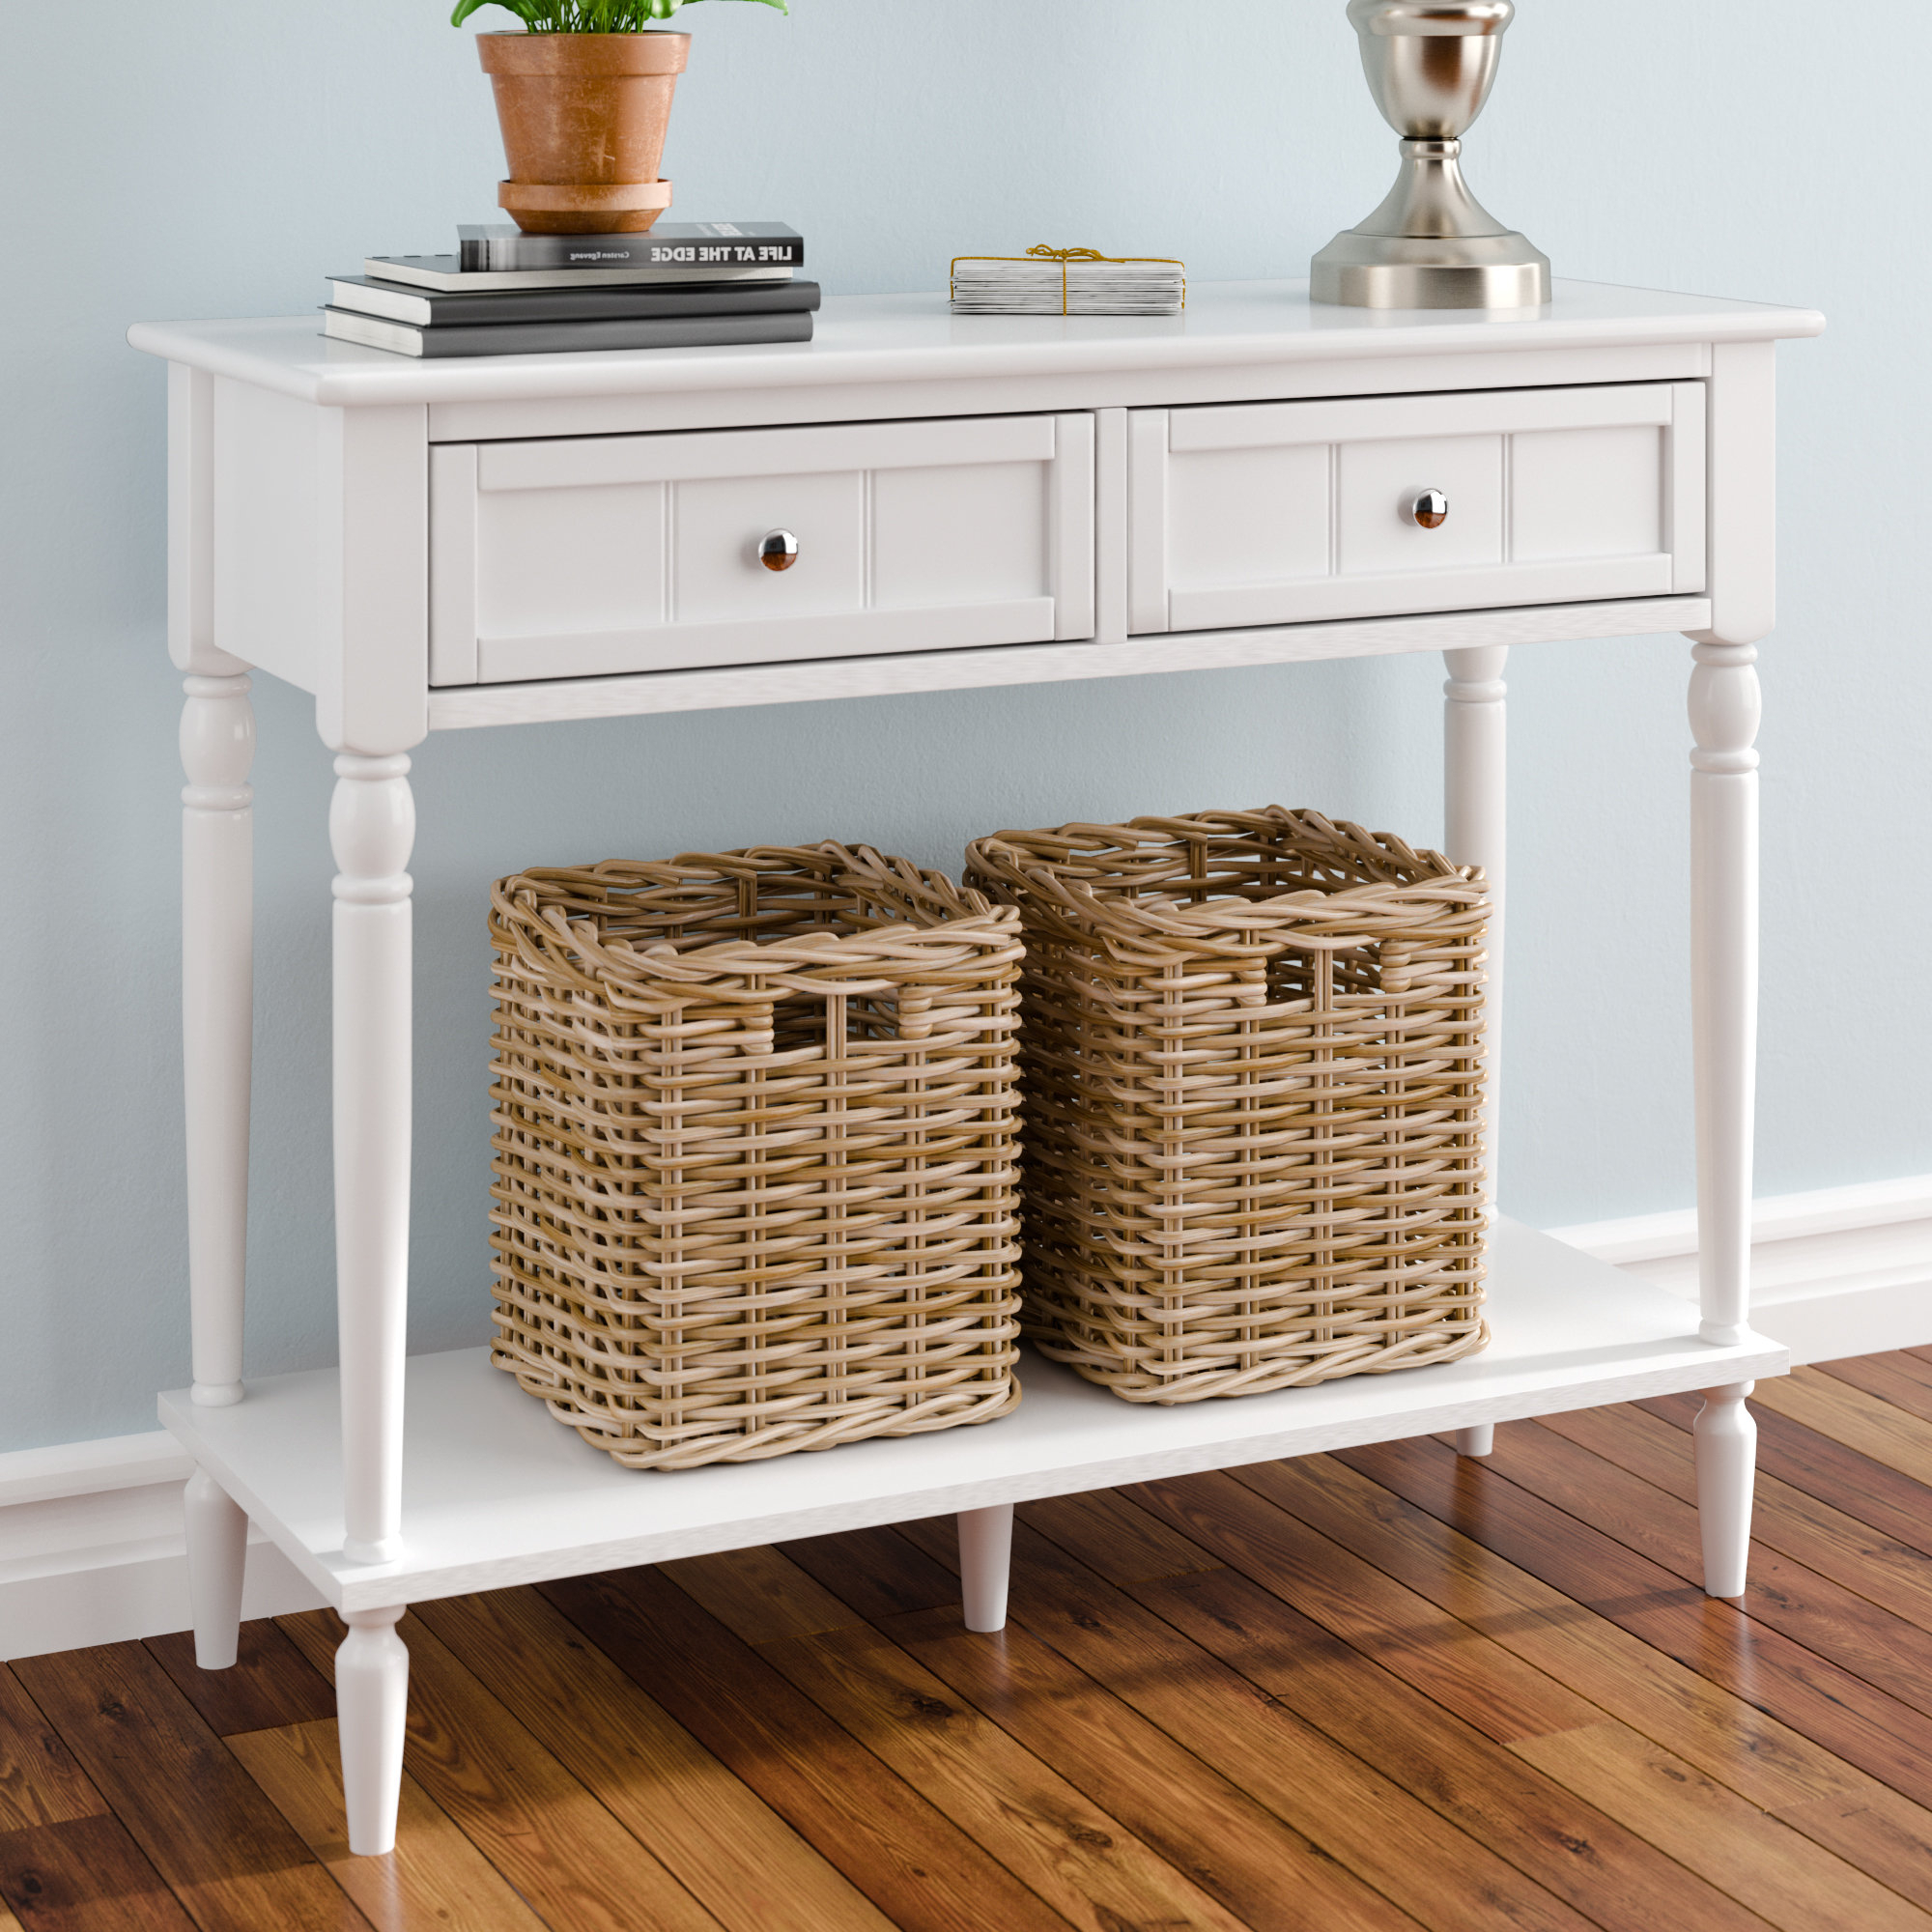 Widely Used Hand Carved White Wash Console Tables Pertaining To White Washed Console Table (View 15 of 20)